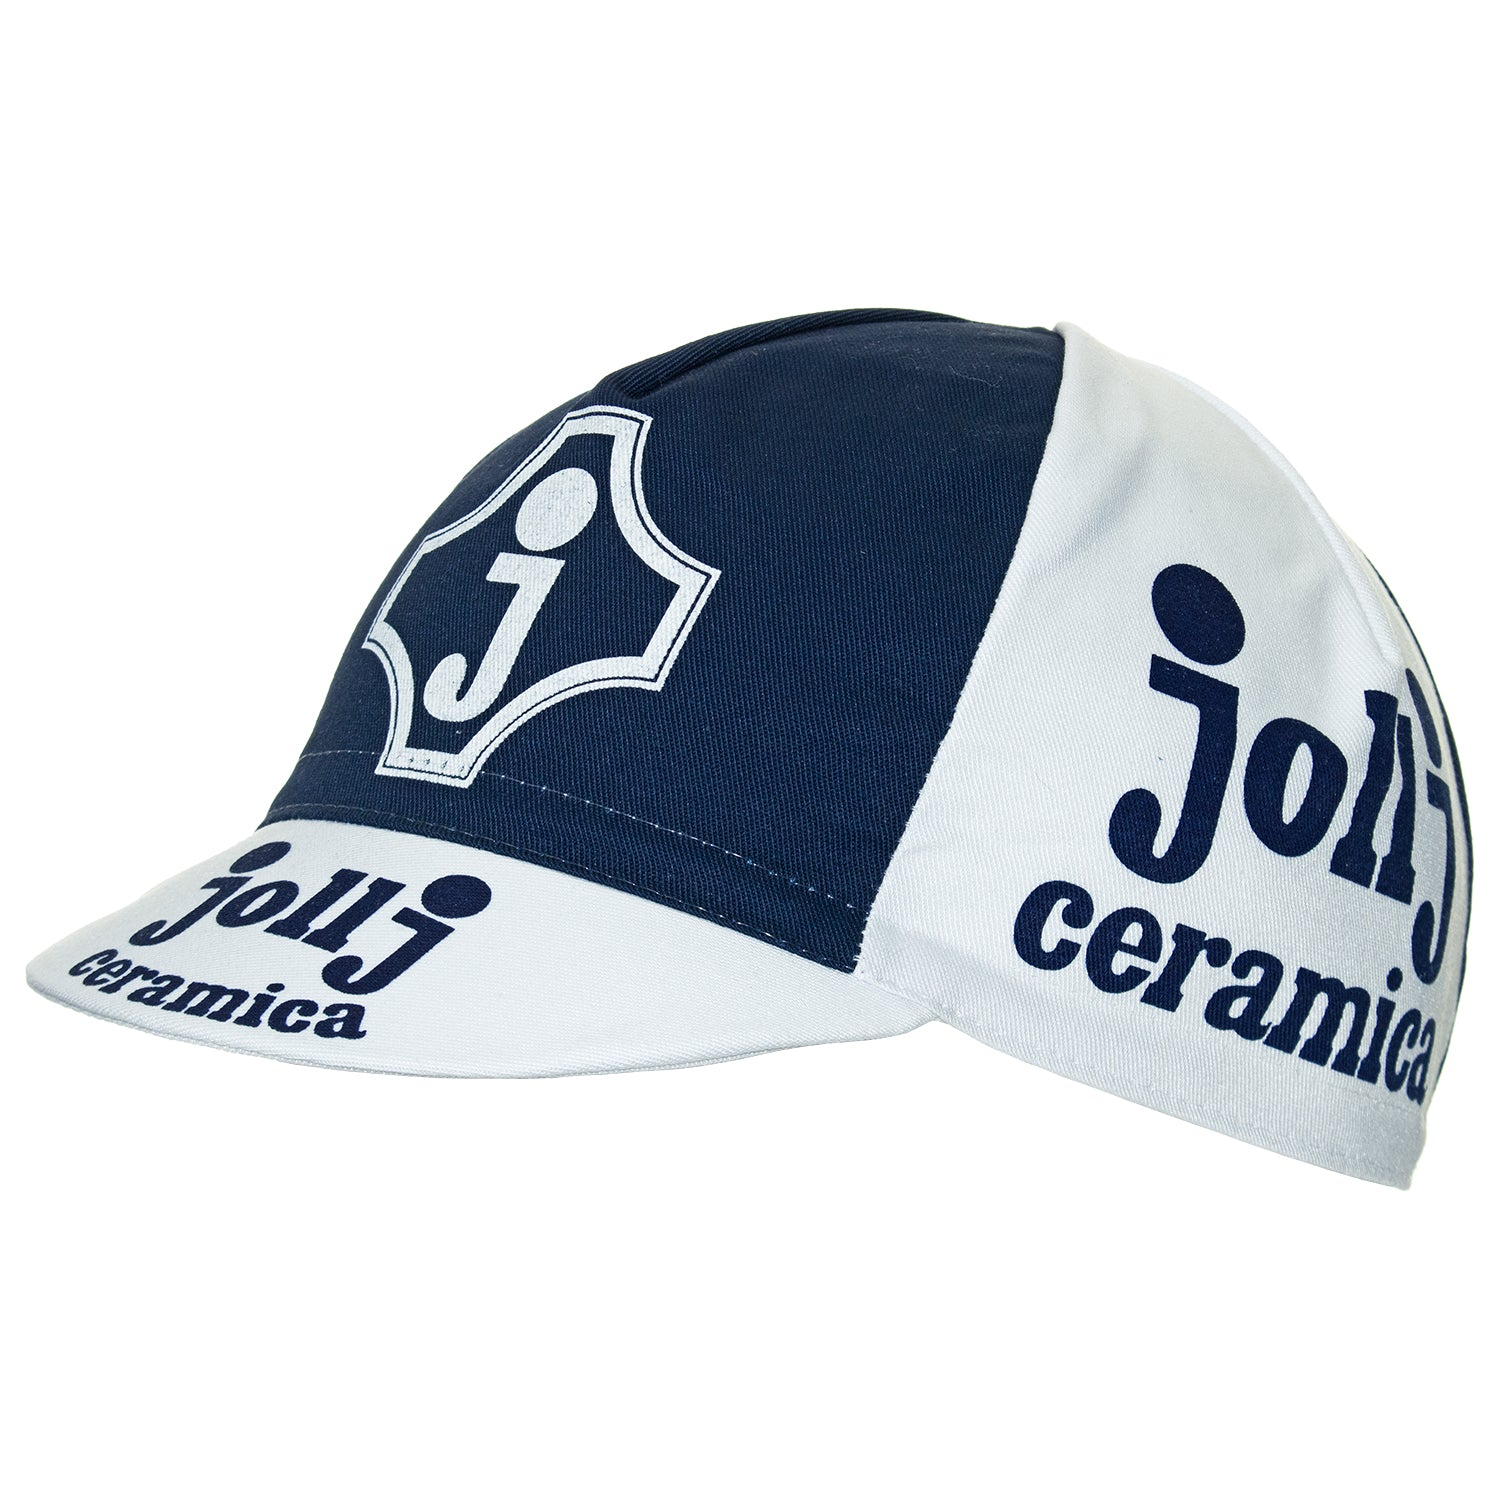 Jollj Ceramica Retro Cotton Cycling Cap